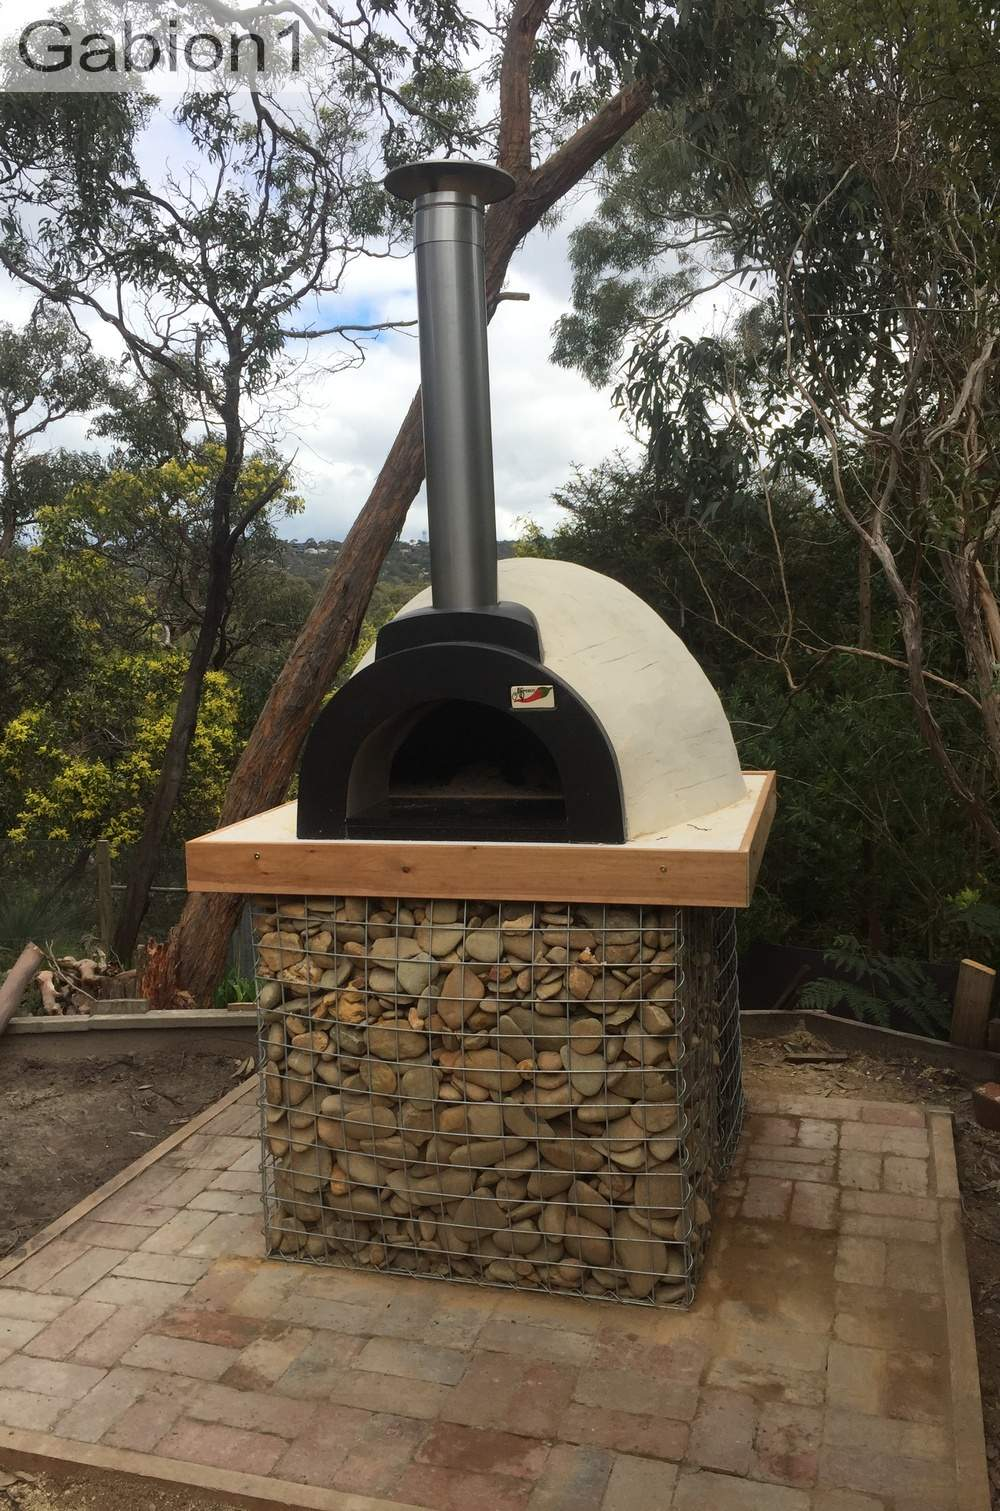 gabion base beneath pizza oven